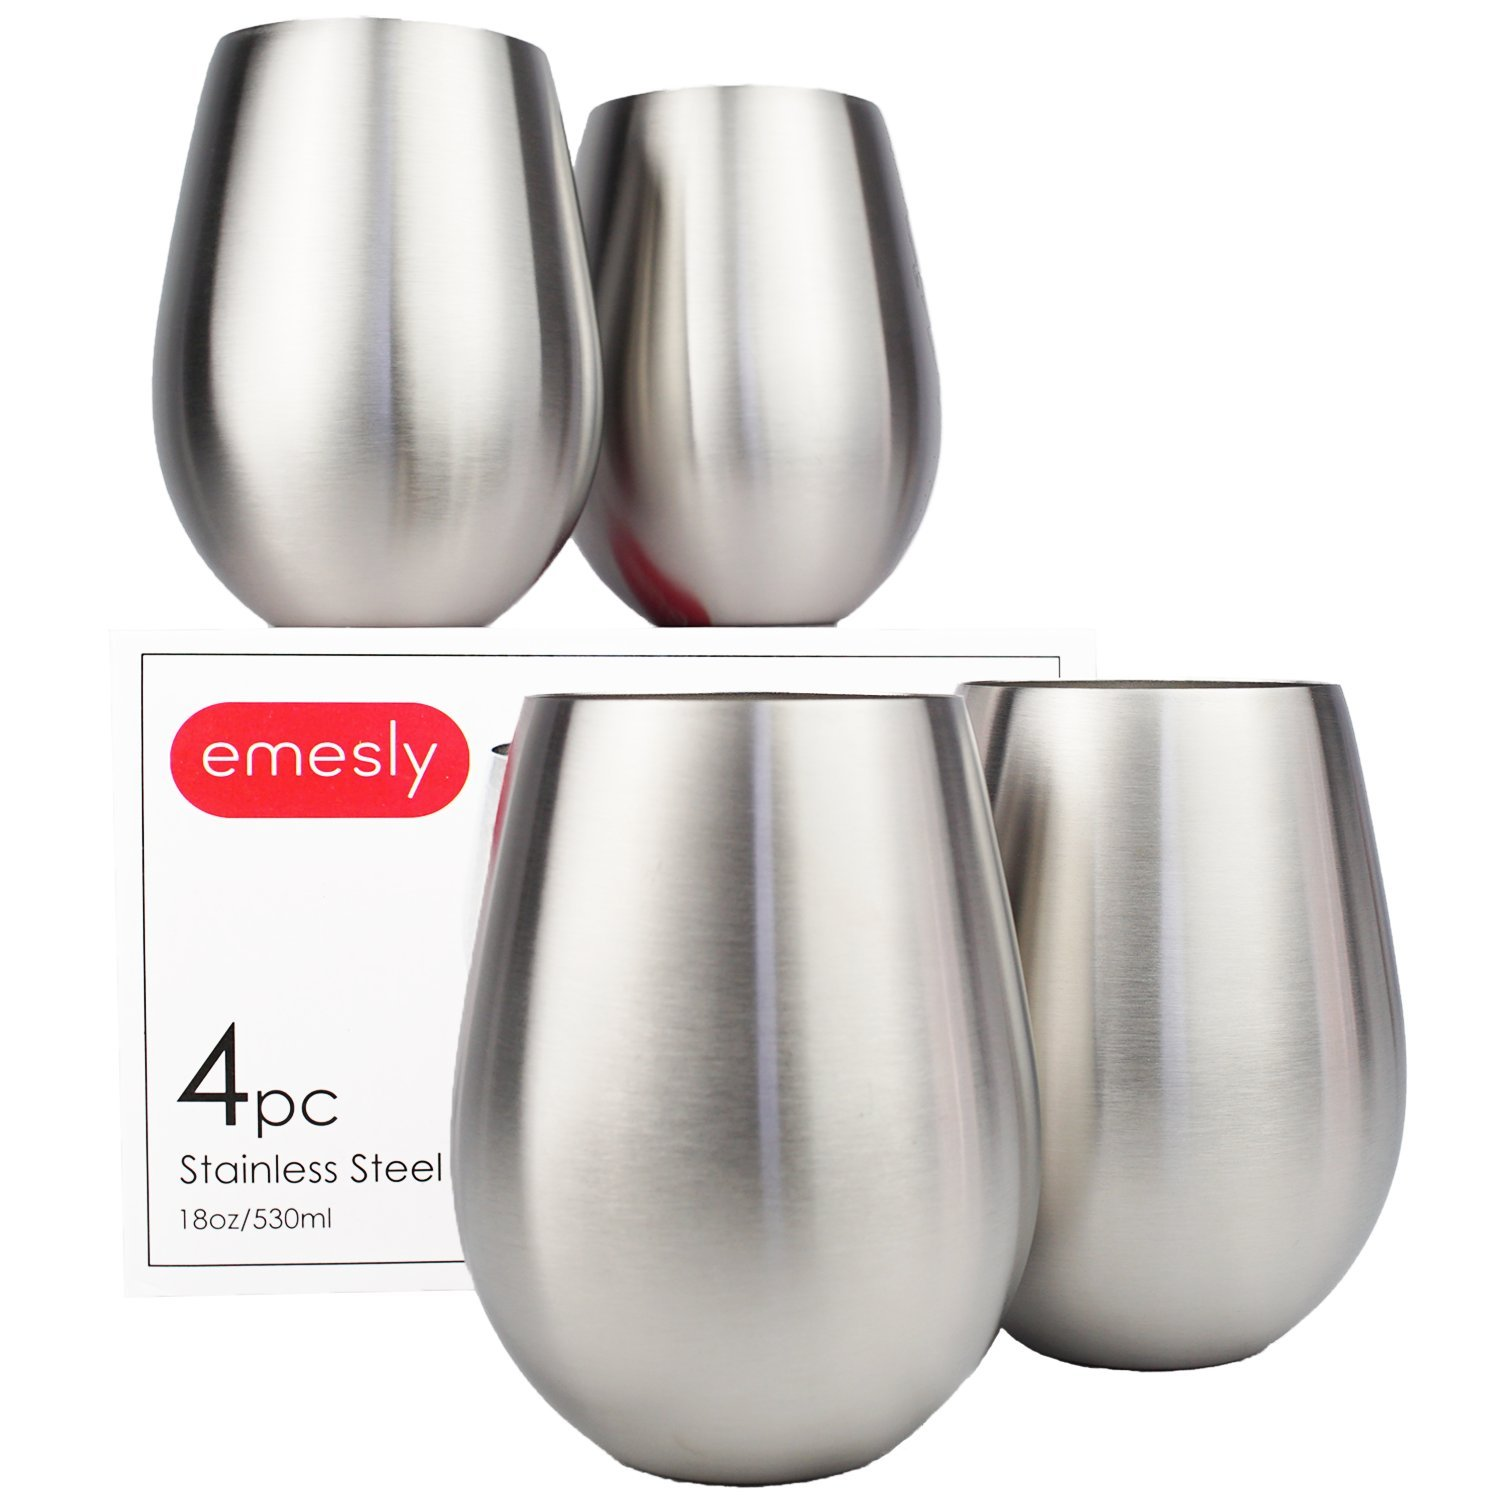 Stainless Steel Wine Glasses, Premium Food Grade 18/8 Stainless Steel Red & White Stemless Metal Wine Glass (Set of 4), Unbreakable, Portable Wine Tumblers for Daily Home, Travel, Outdoor Use; 18 Oz.